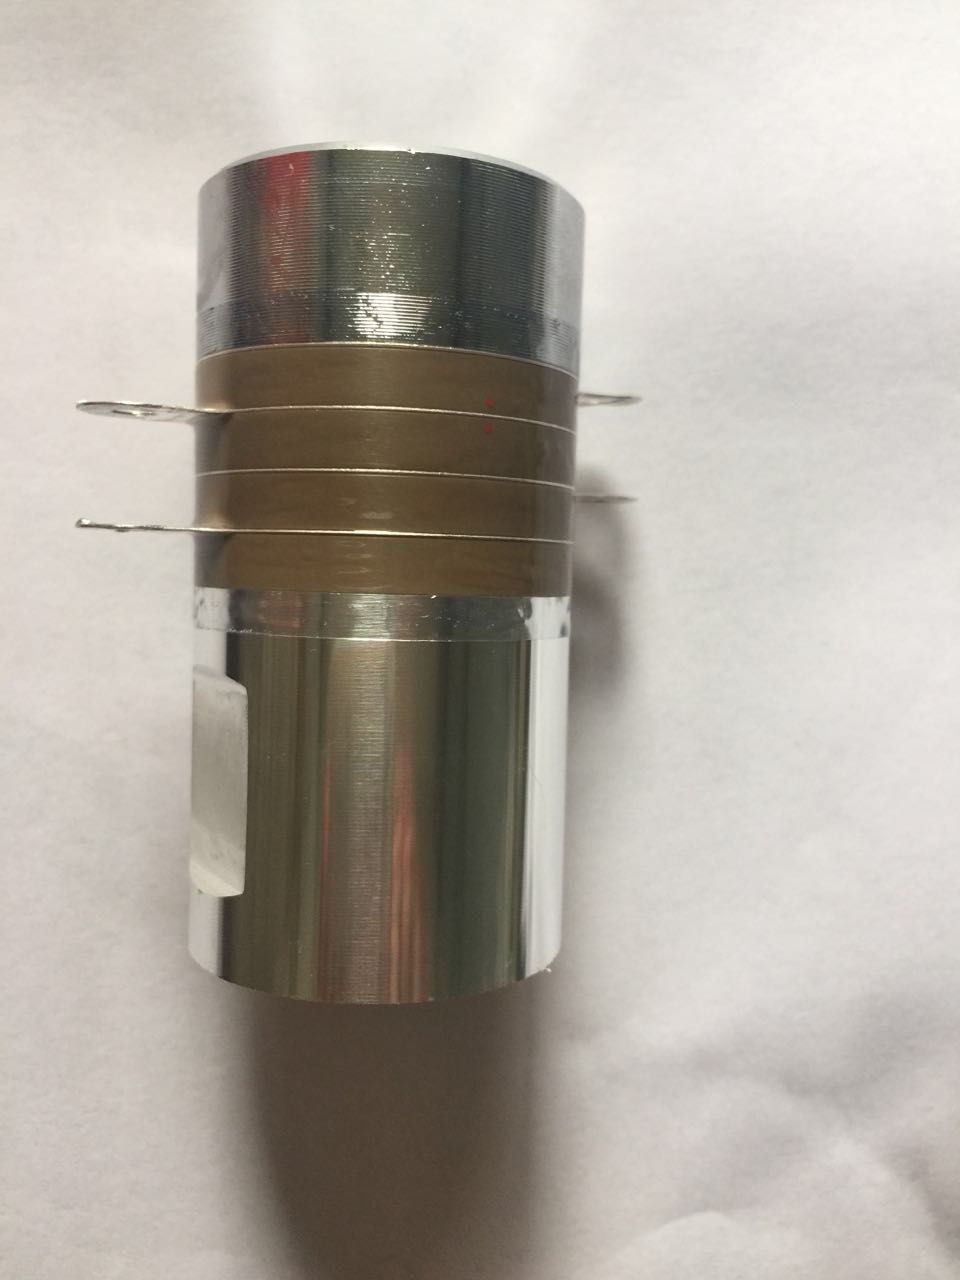 28kkhz/600W ultrasonic welding transducer UCE-UWT28600 P8,high power ultrasonic transducer